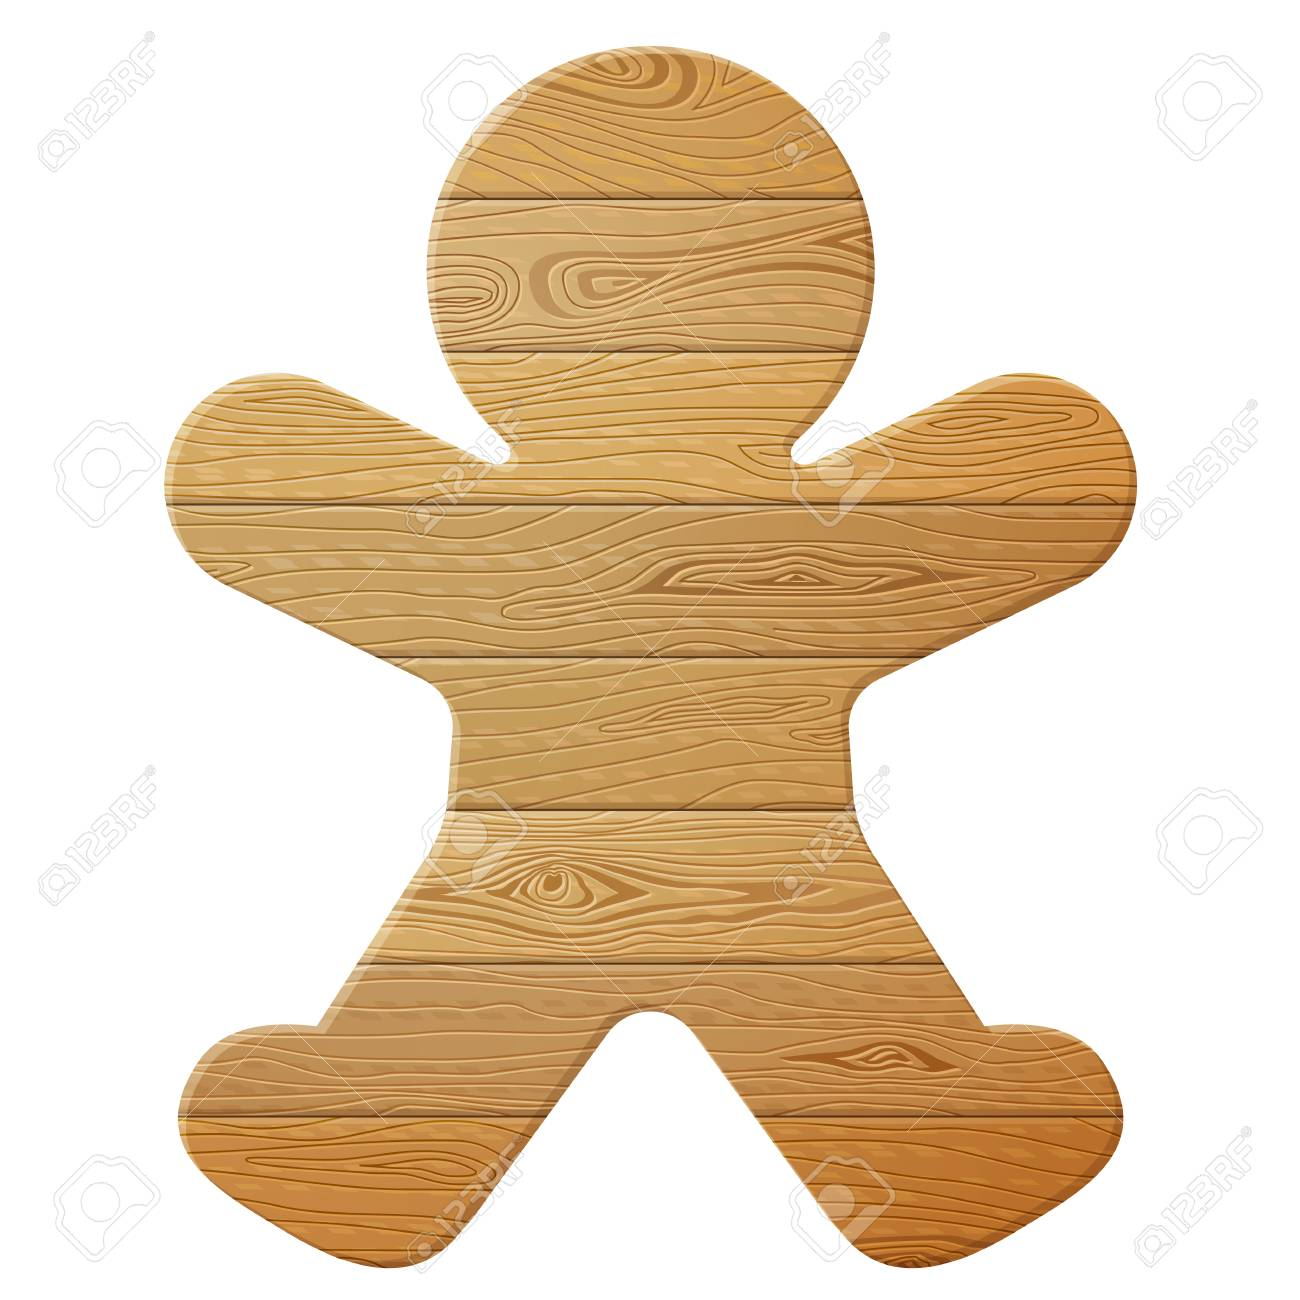 bfecbd1b55634 Gingerbread man of wood isolated on white background. Wooden planks in shape  of christmas cookie